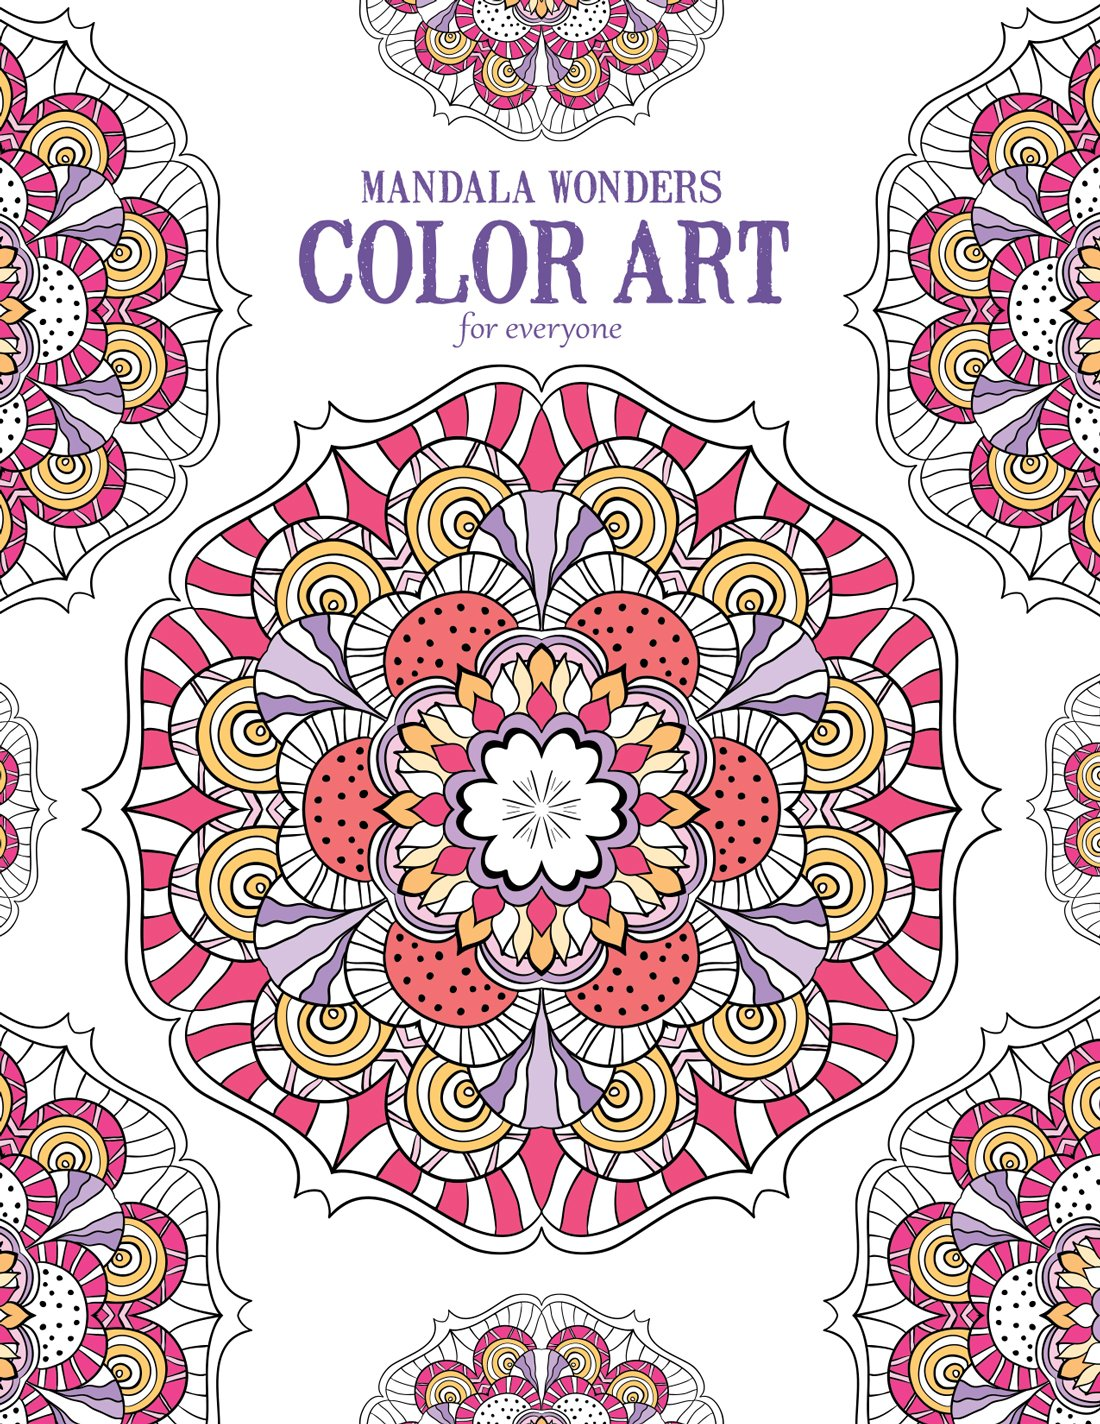 Amazon Com  Mandala Wonders Color Art For Everyone (0028906067651